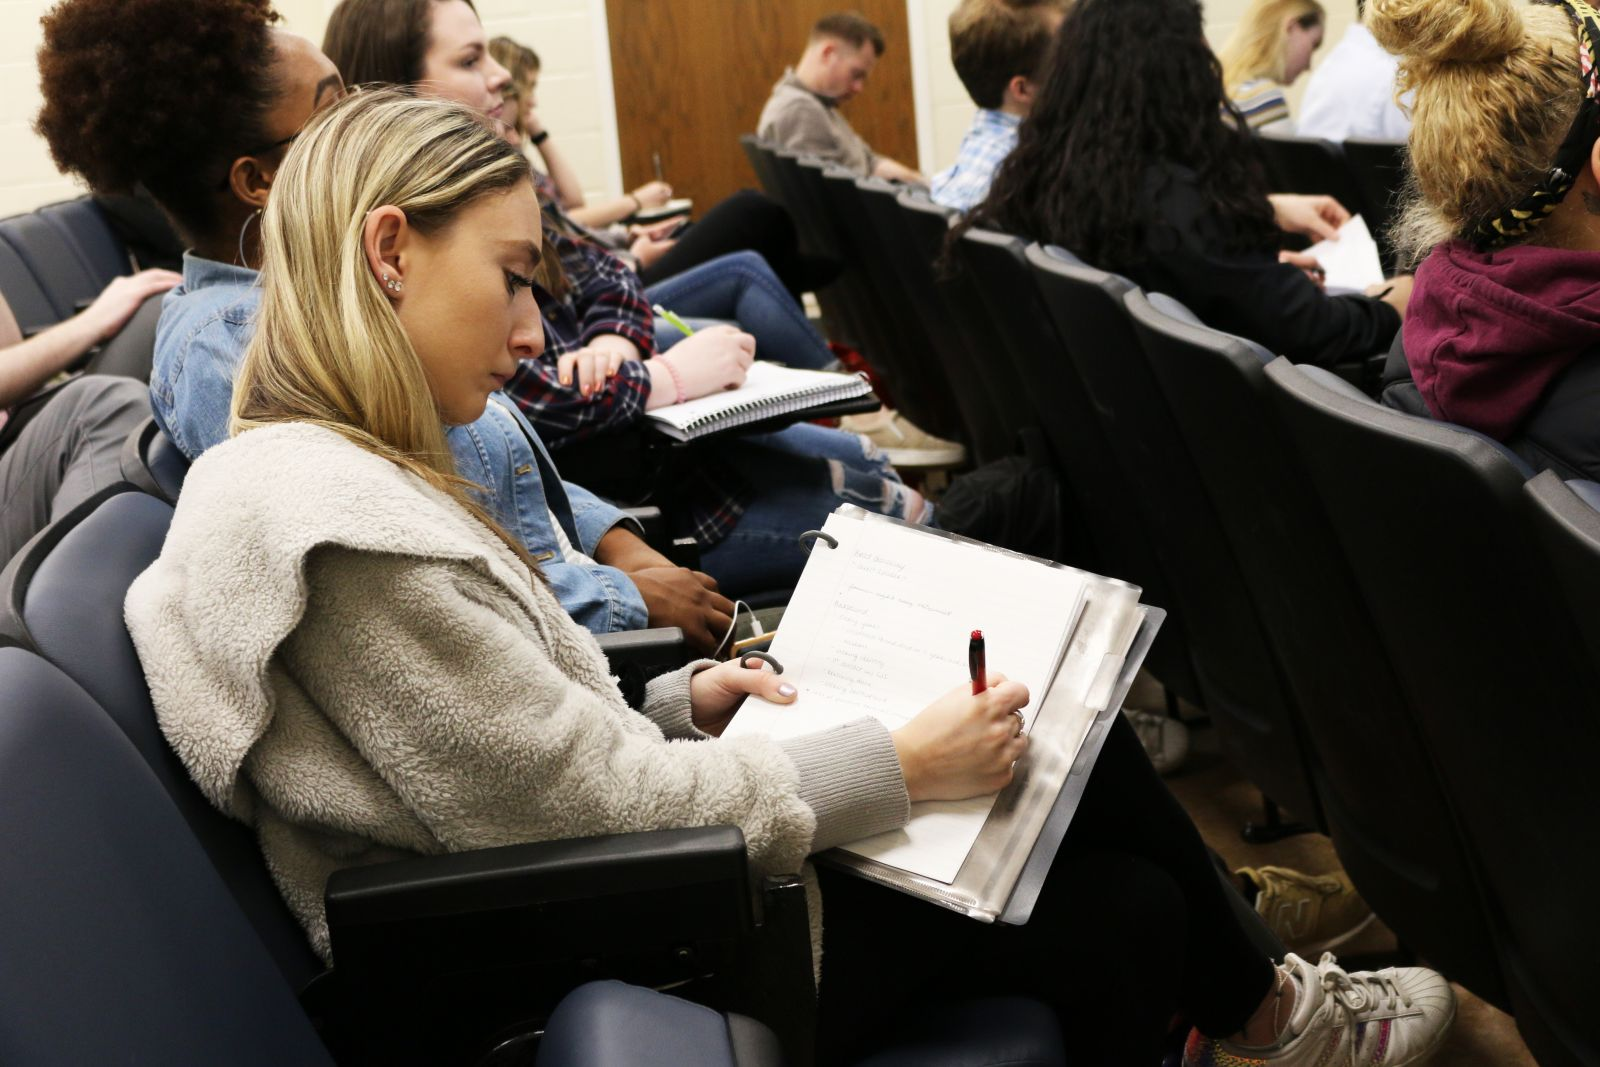 A UMD student takes notes during a lecture